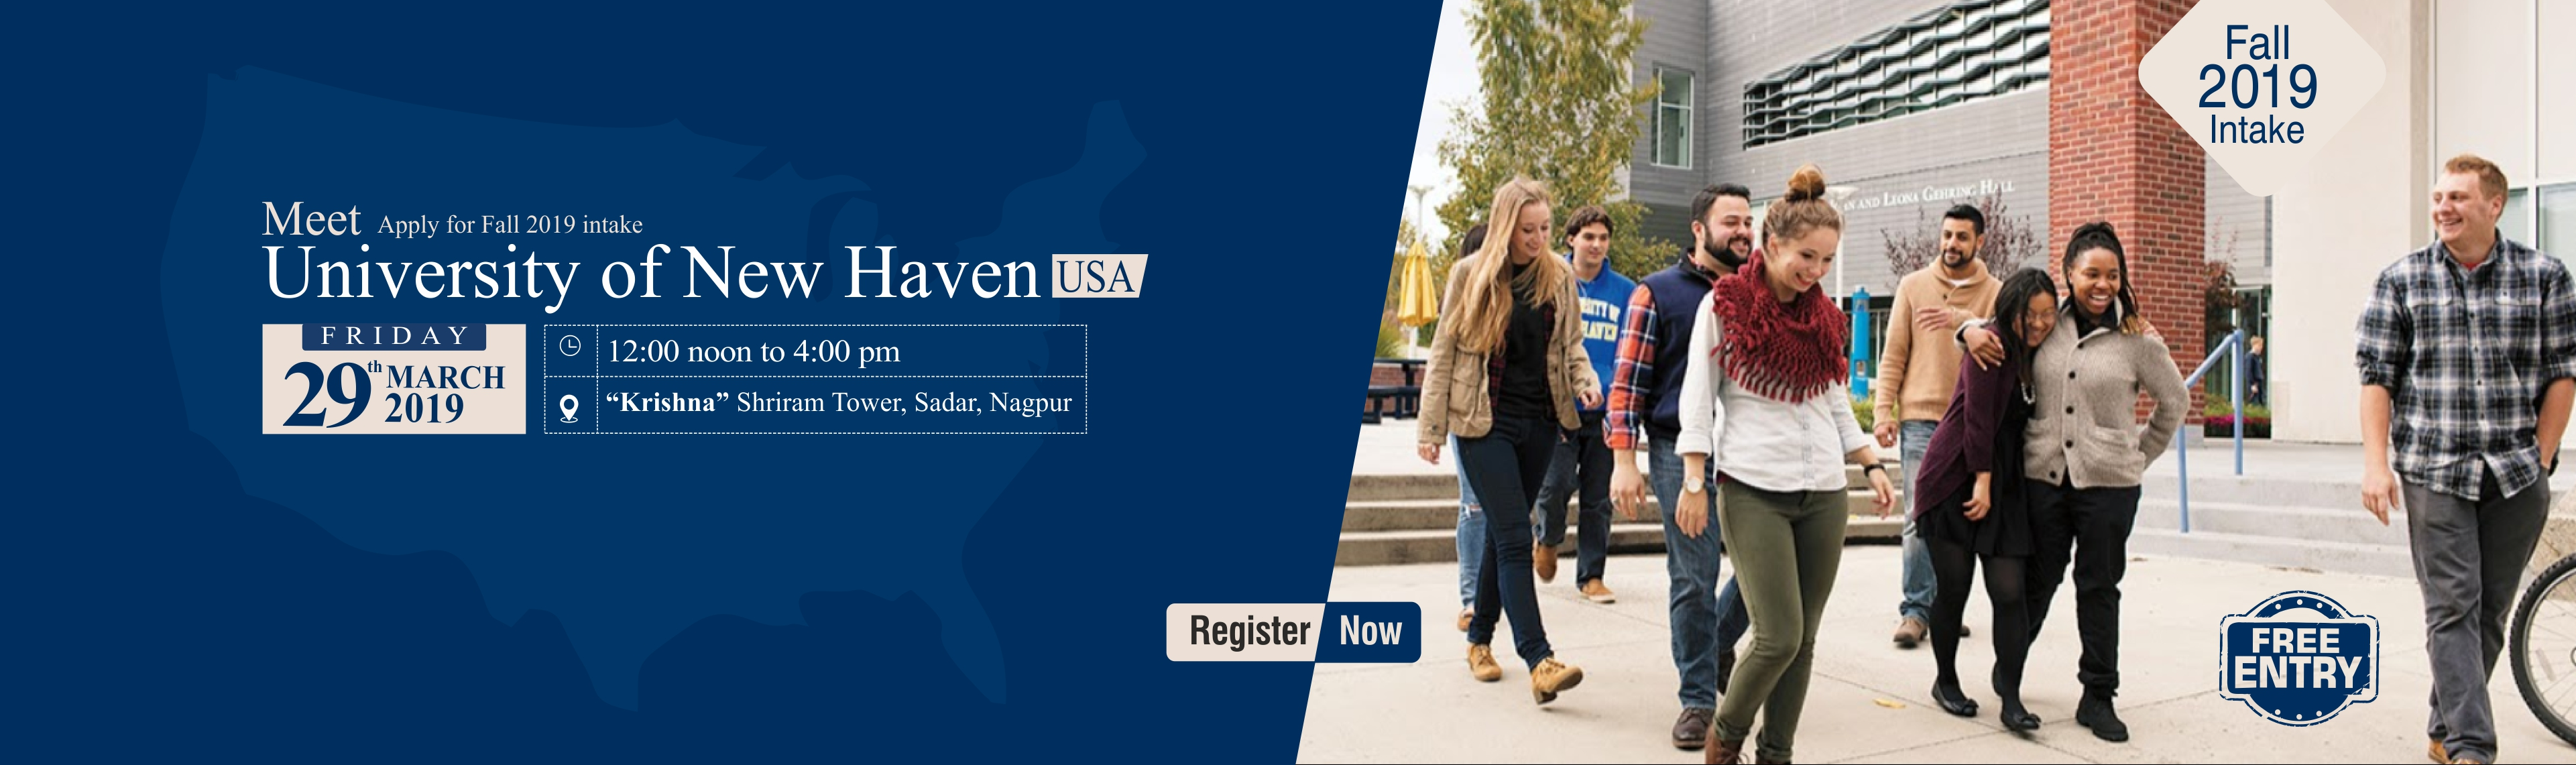 Meet Delegate of University of New Haven, USA - 29th March 2019 | Free Entry!!!